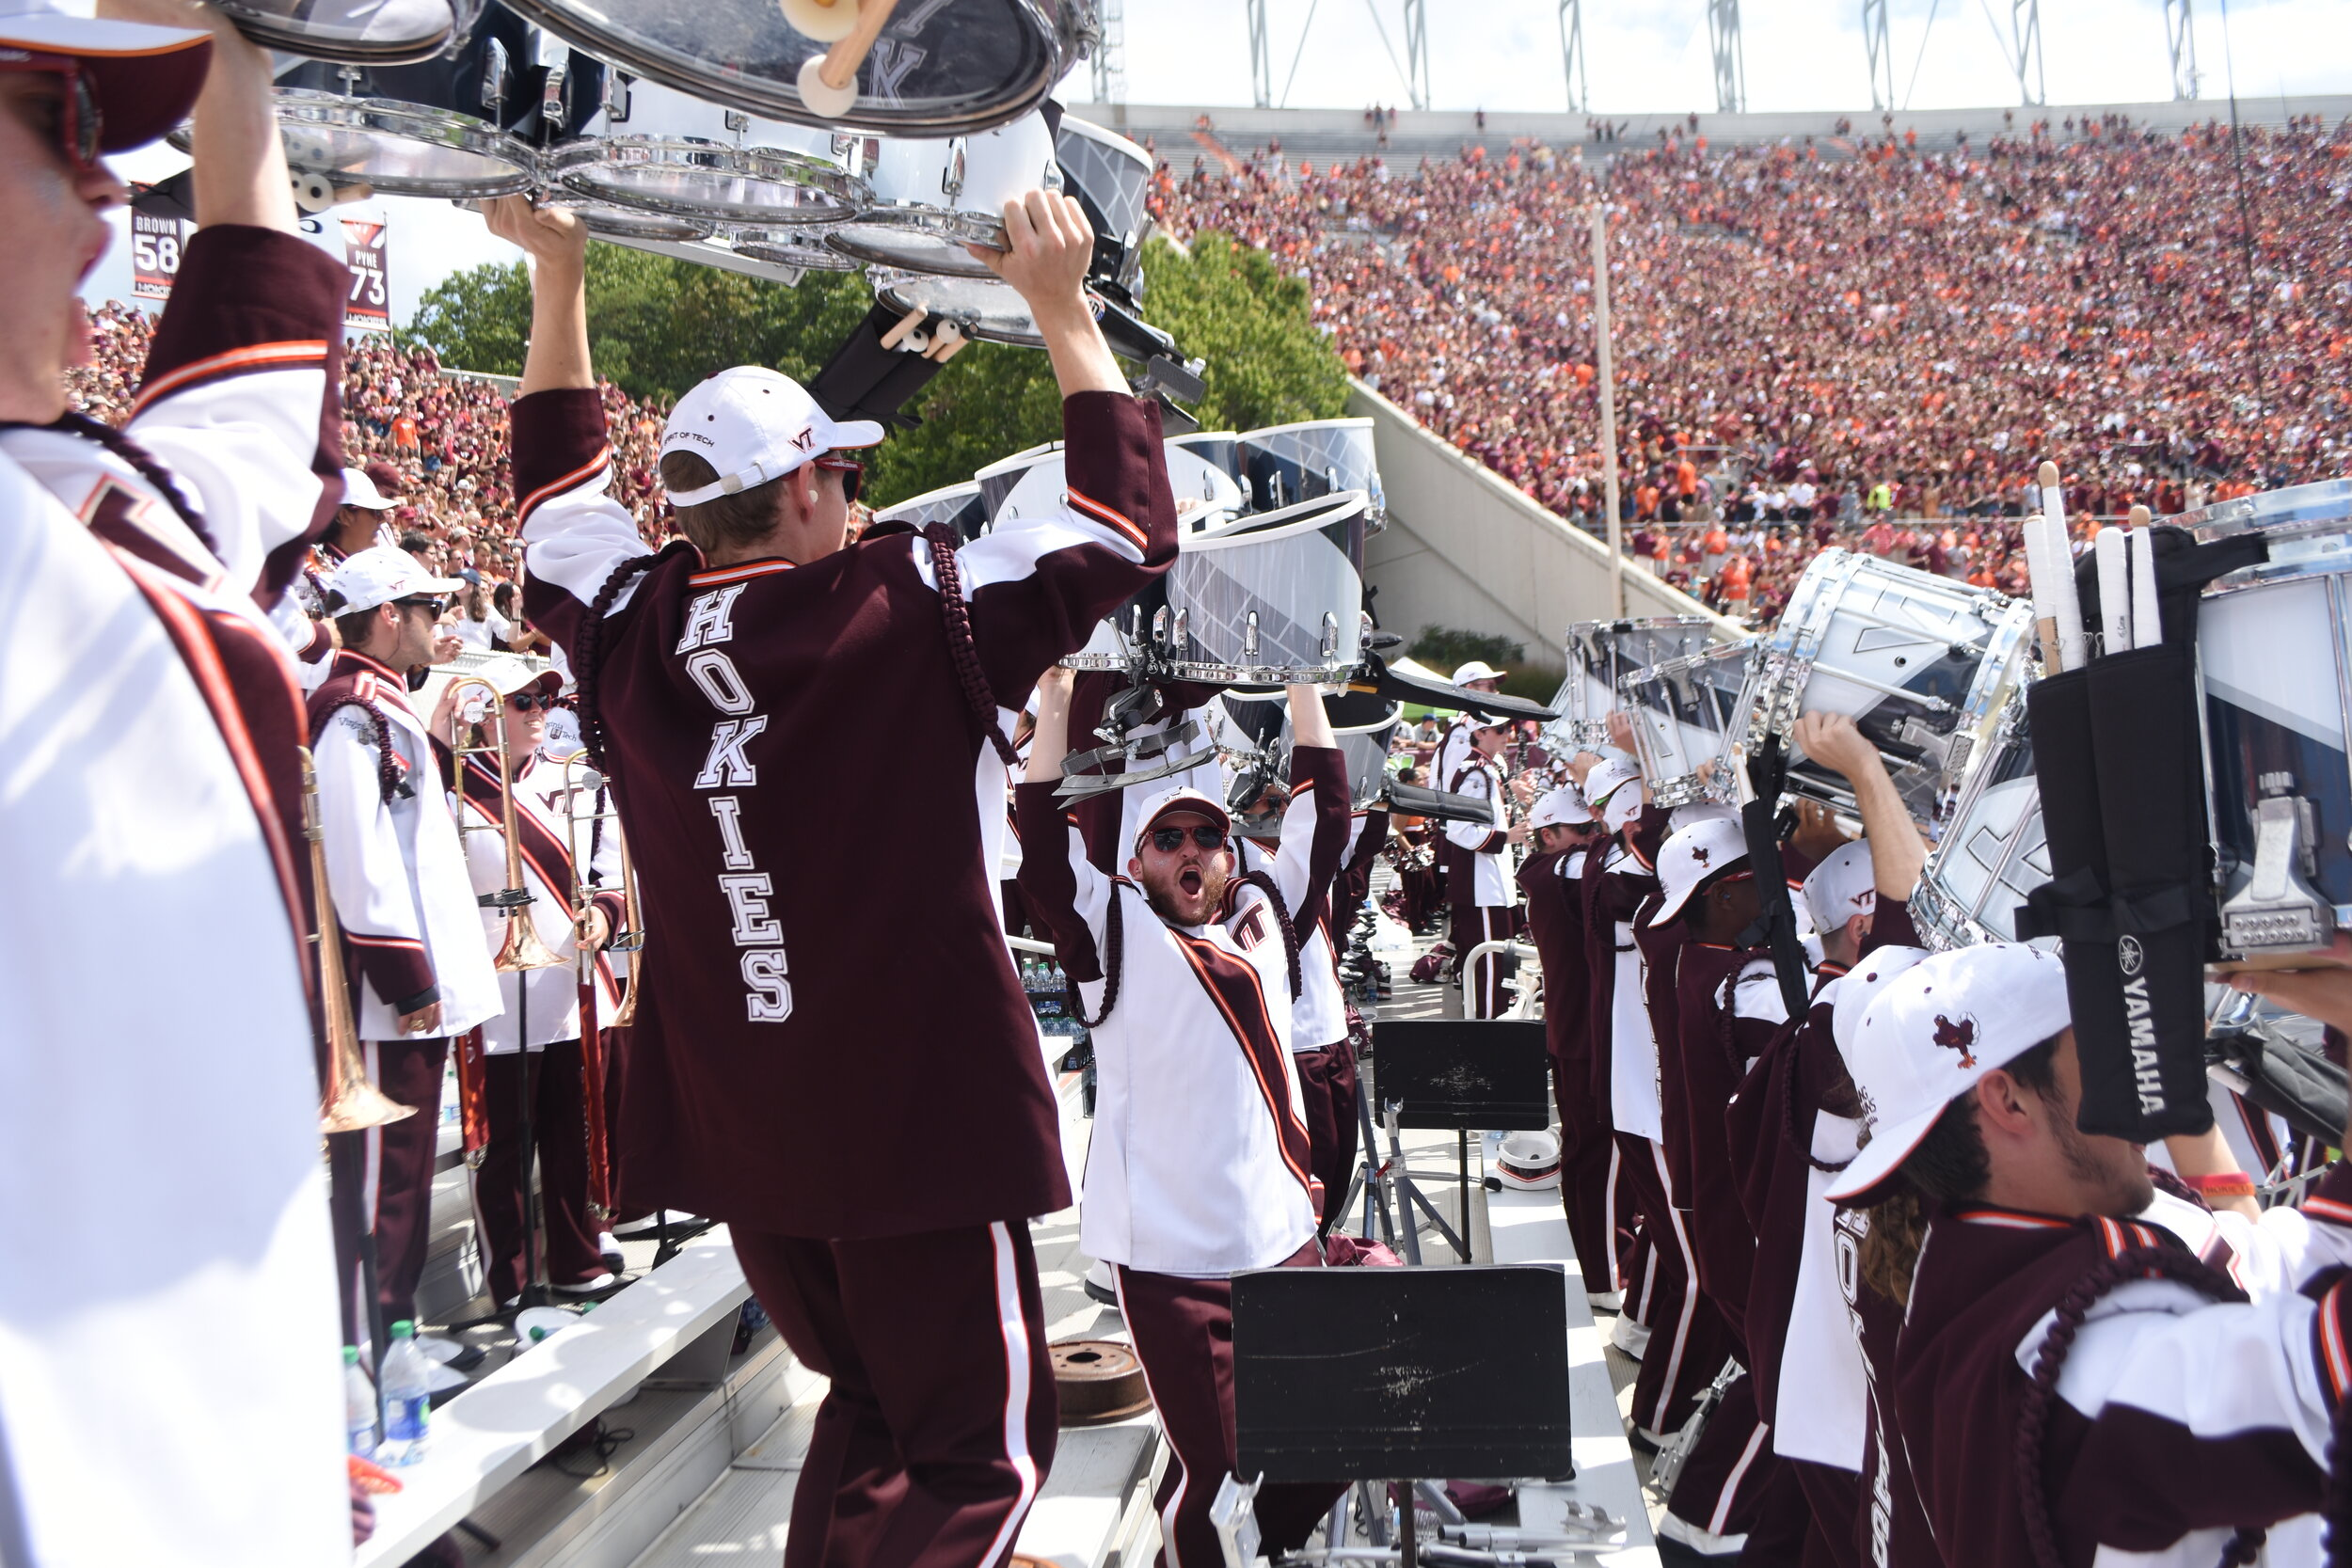 The new (taxing) drumline tradition is to lift the drums during certain parts of the game; Source: Drew Robertson-Gouge